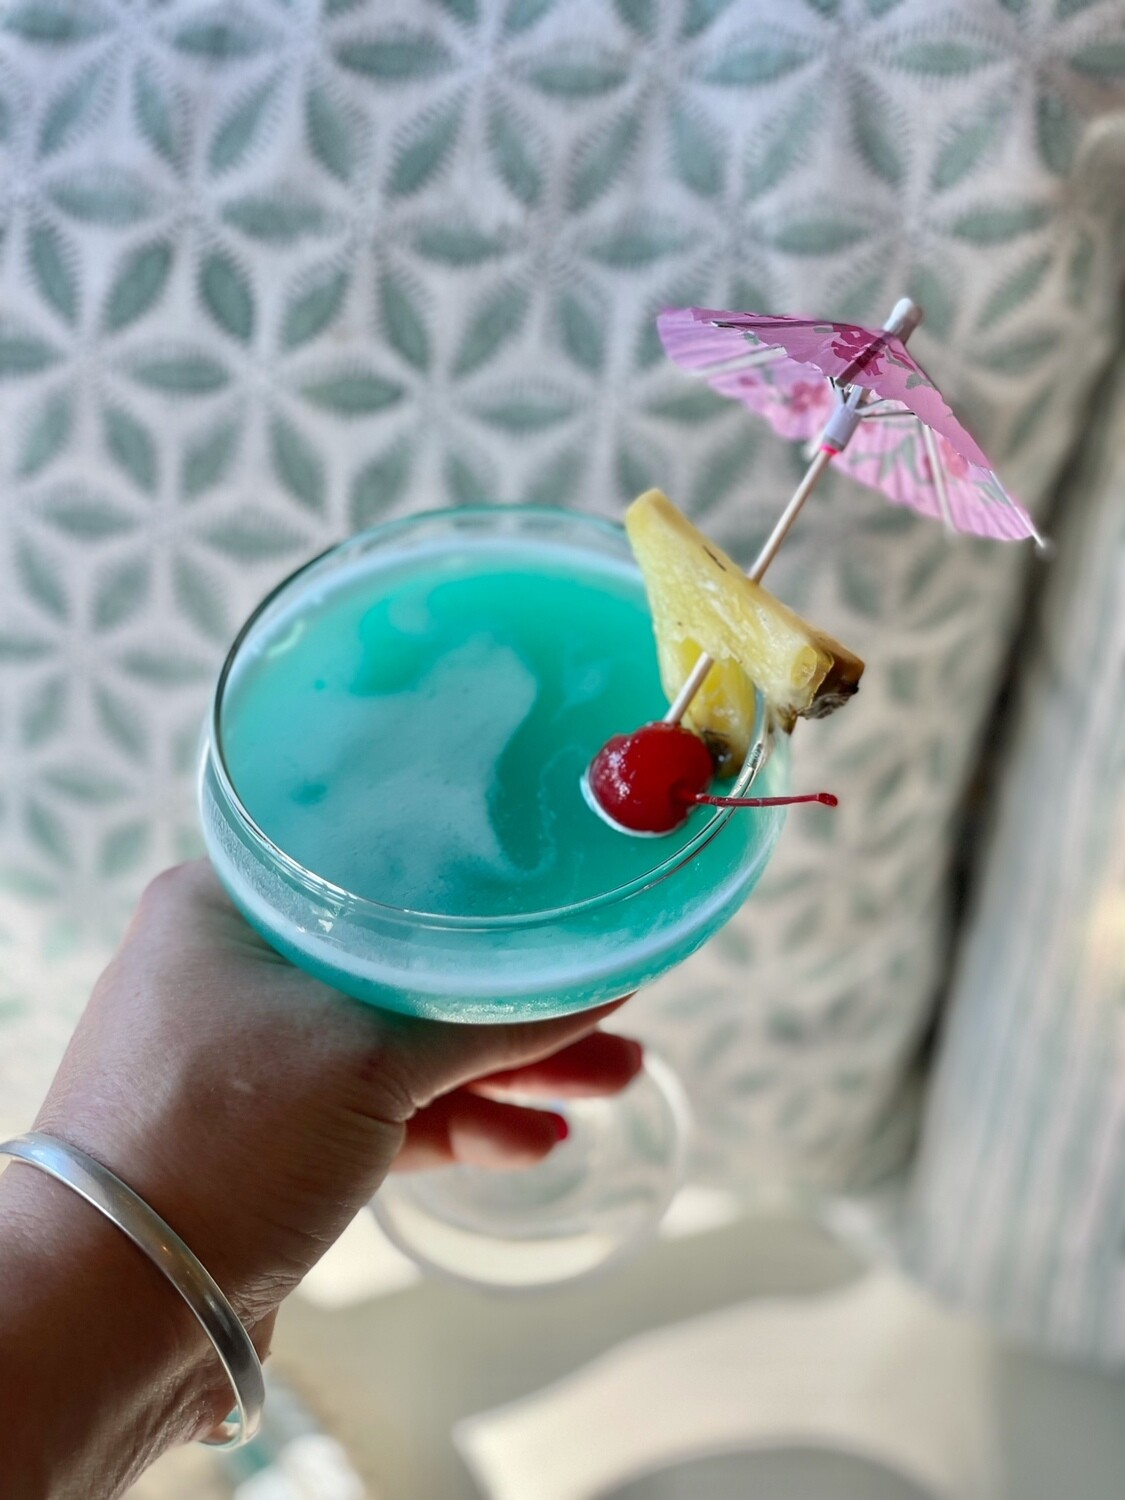 Blue Margarita (serves 2) Tequila, Pineapple, Lime, Curacao, Cherry